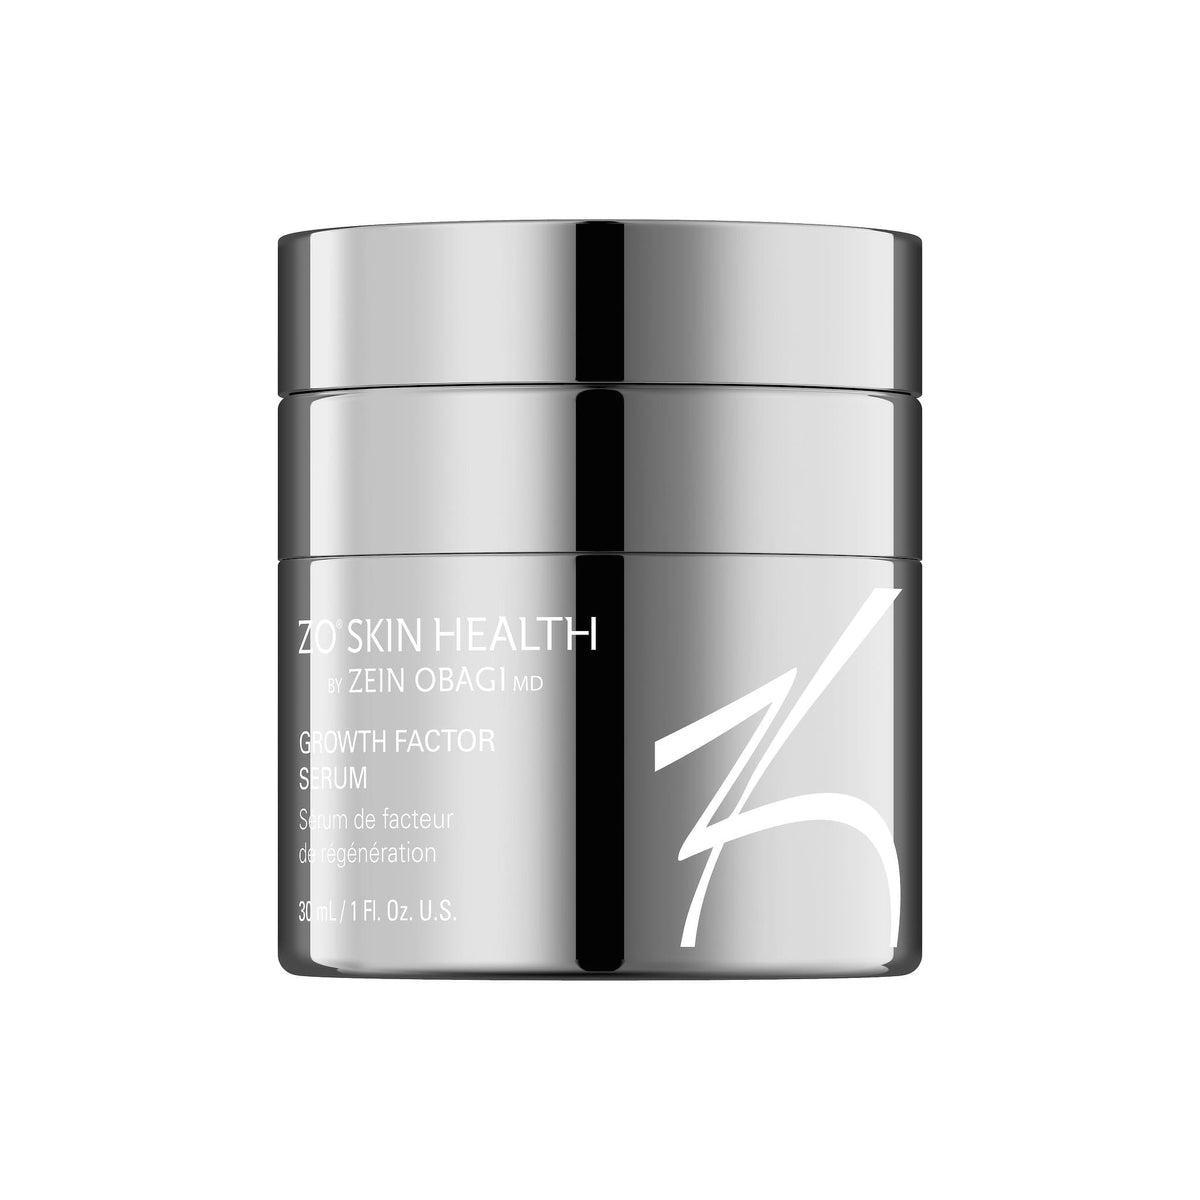 ZO® SKIN HEALTH - GROWTH FACTOR SERUM - Beauty Nook